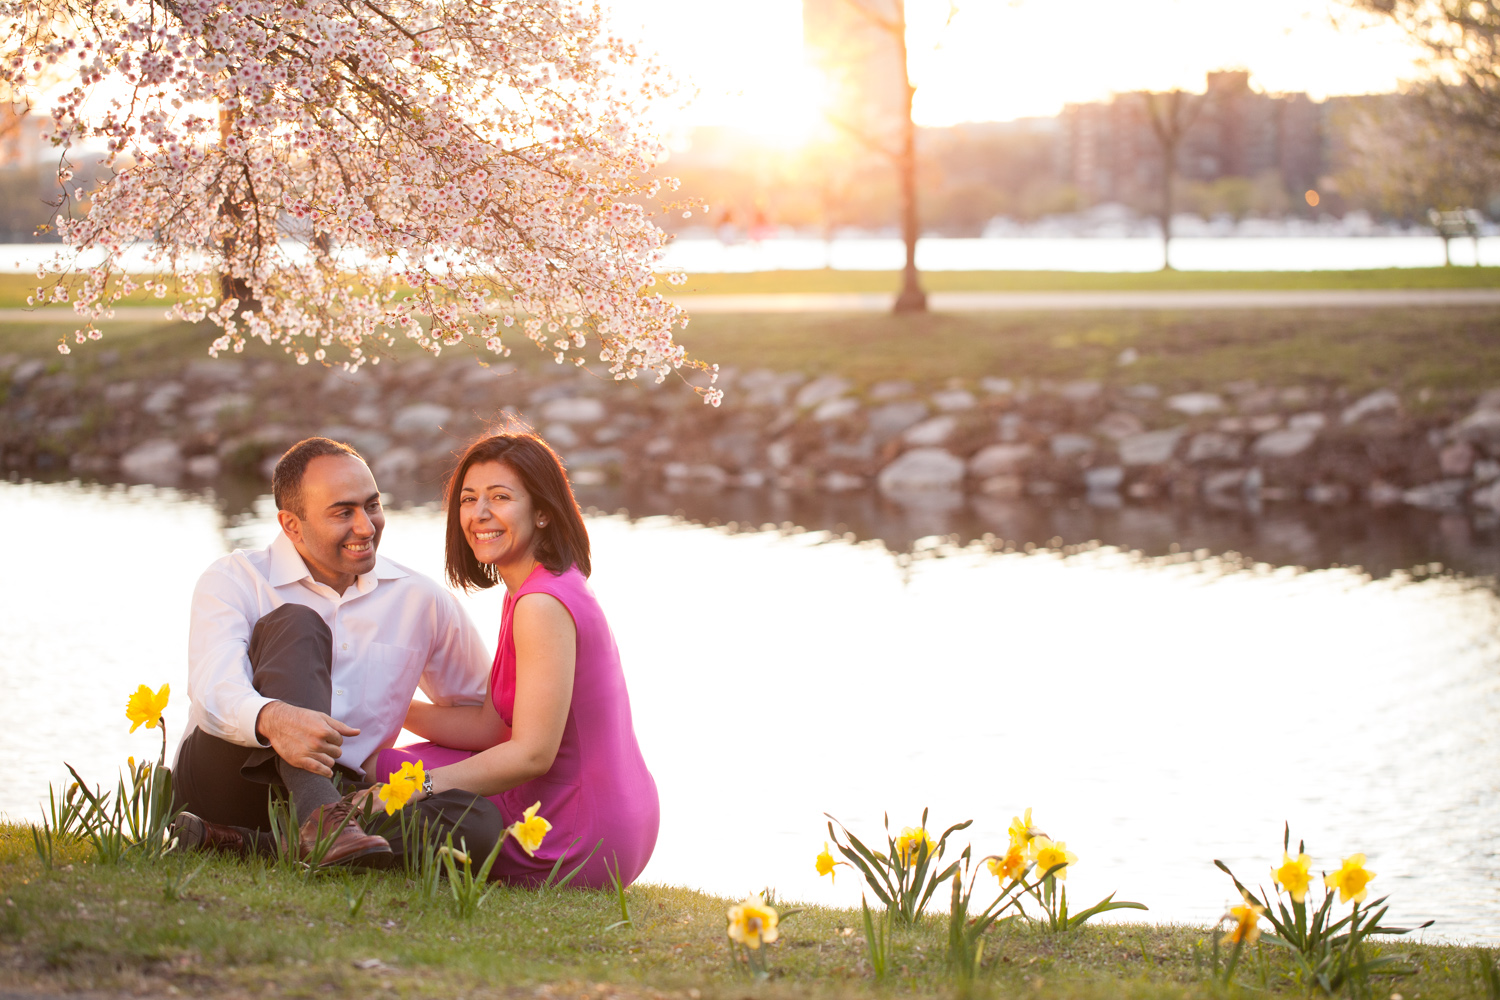 spring-charles-river-boston-cherry-blossoms-photo-shoot-pink-dress.jpg